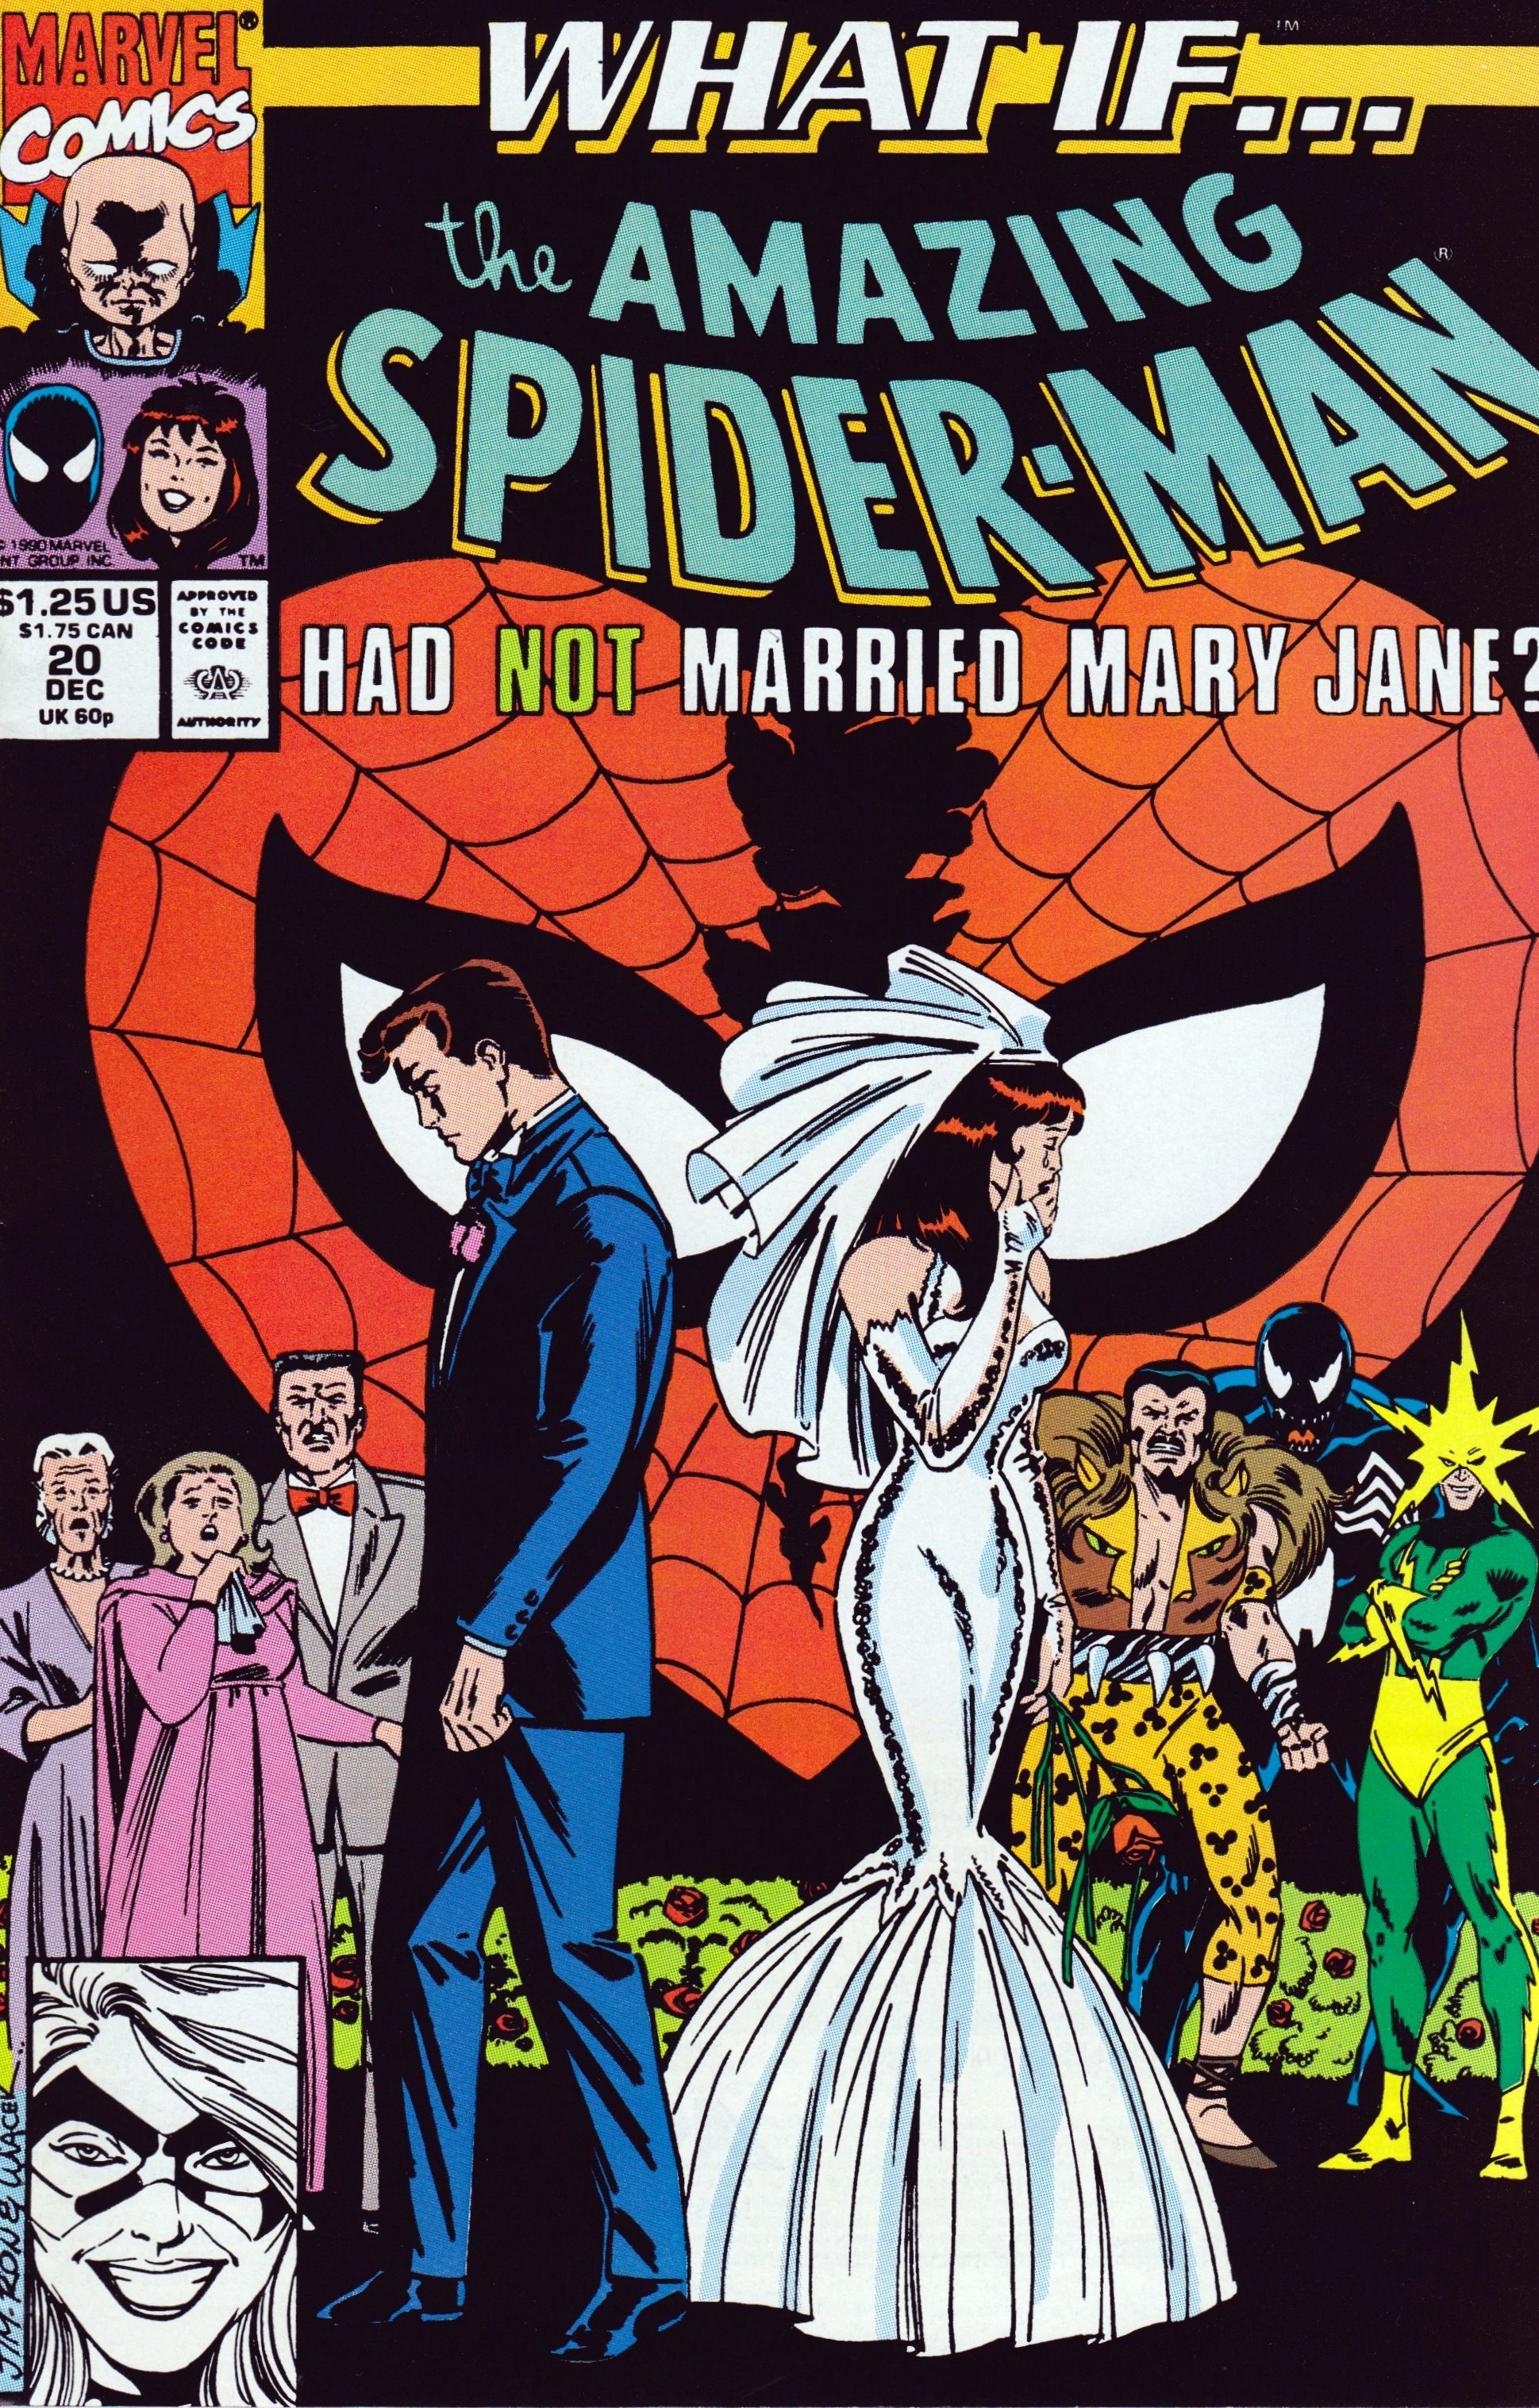 Peter and MJ wedding What If...? Spiderman comic, Comics